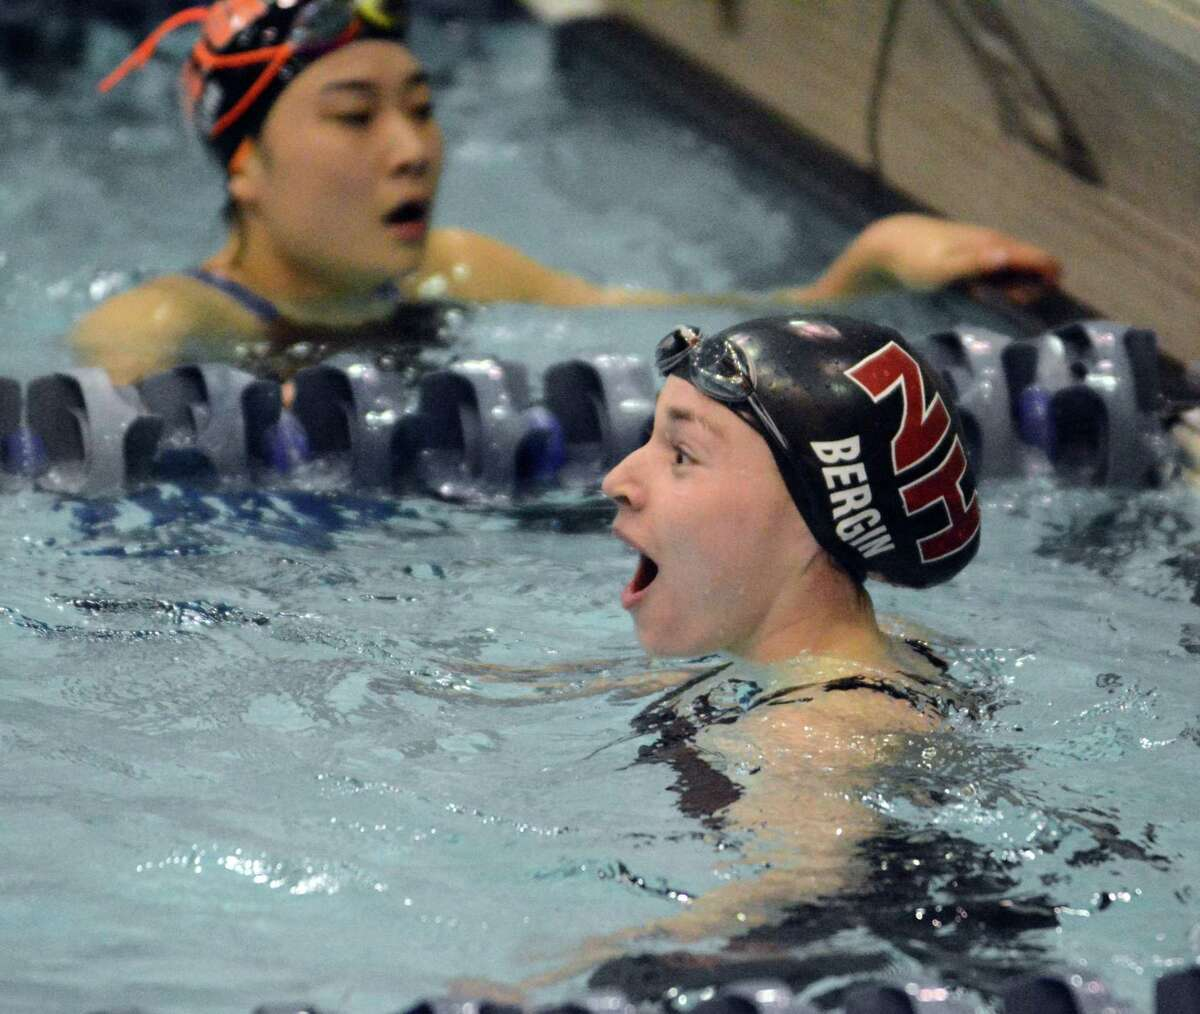 North Haven's Maddie Bergin reacts after winning the 100 freestyle during meet in 2017.